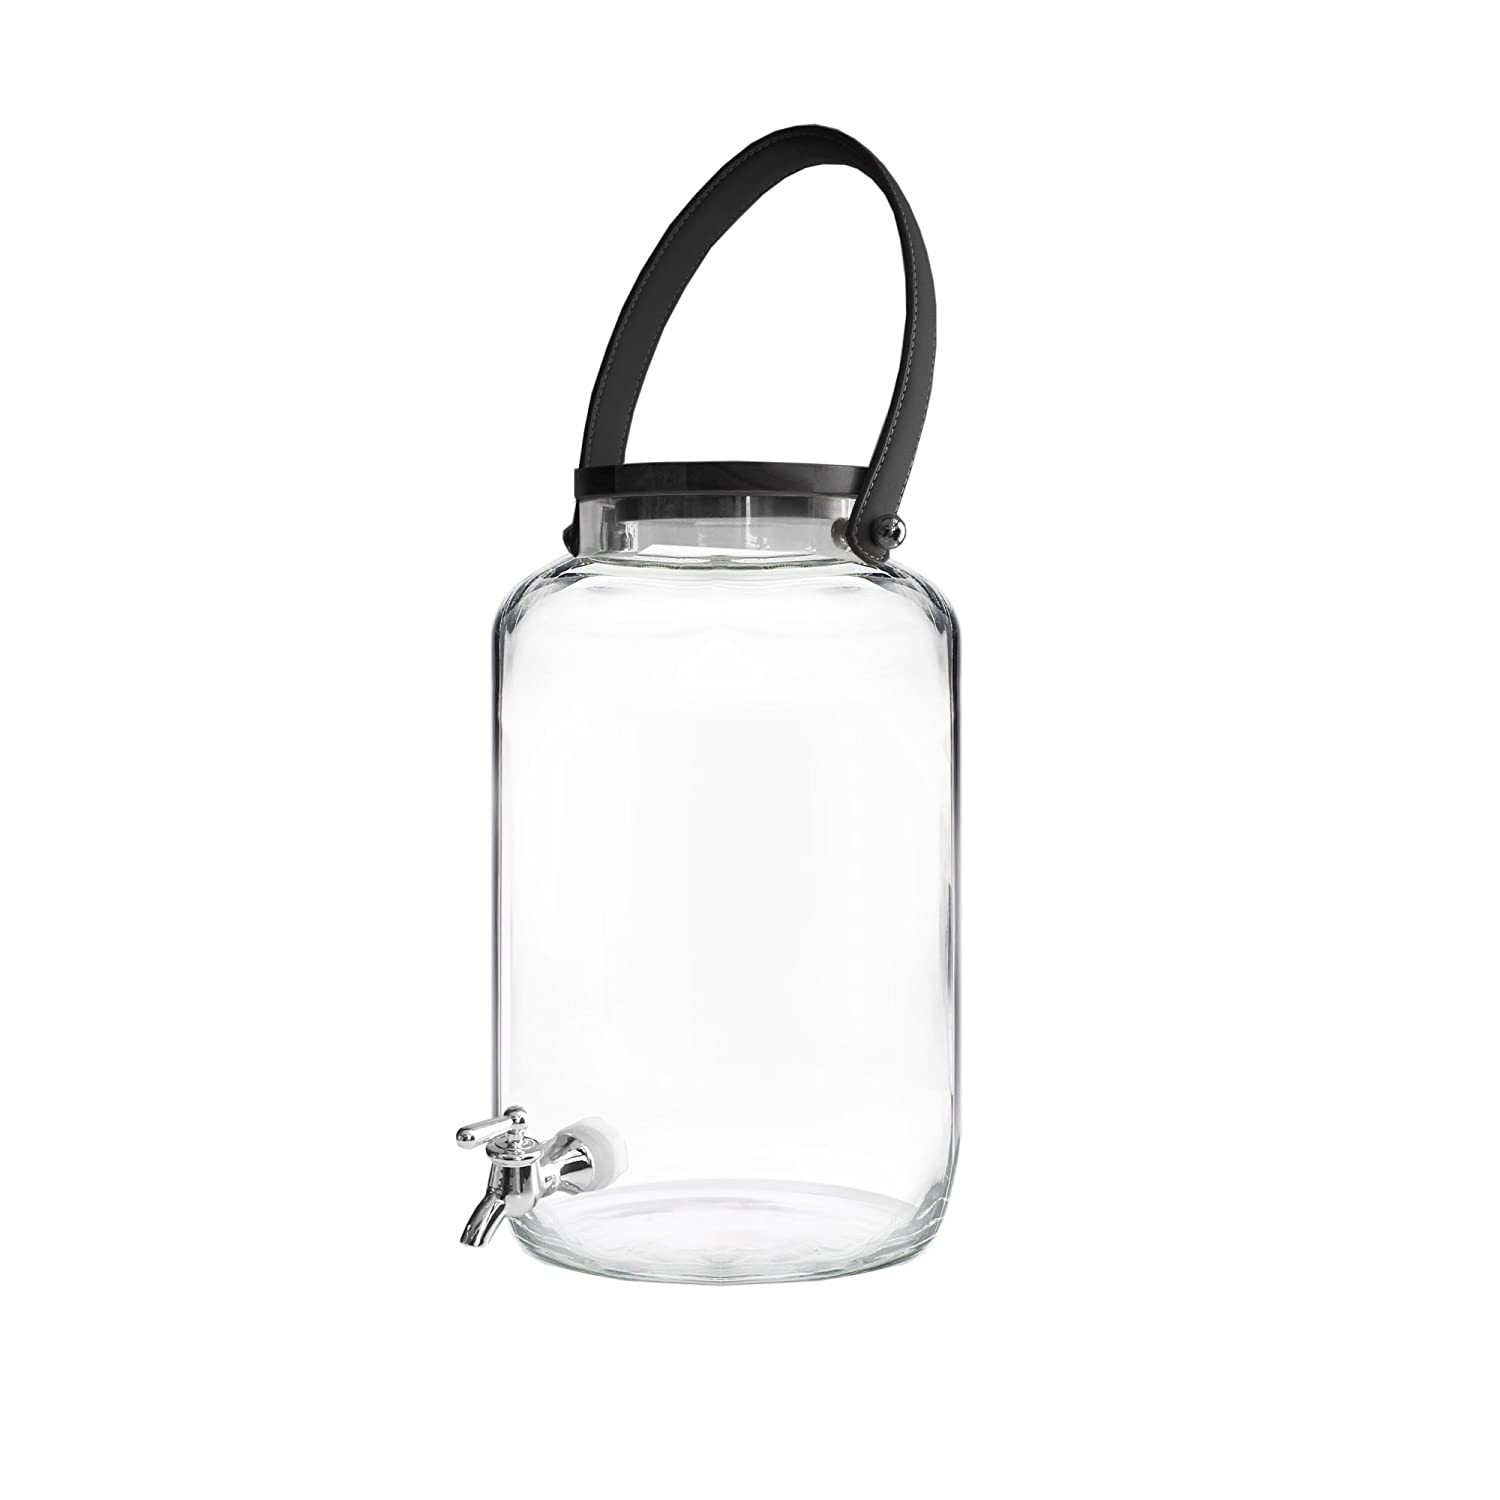 Fifth Avenue Crystal Kent 210426 2 Gallon Hand Blown Glass Beverage Drink Dispenser with Leather Handle 8.5 x 14.2 Black//Clear